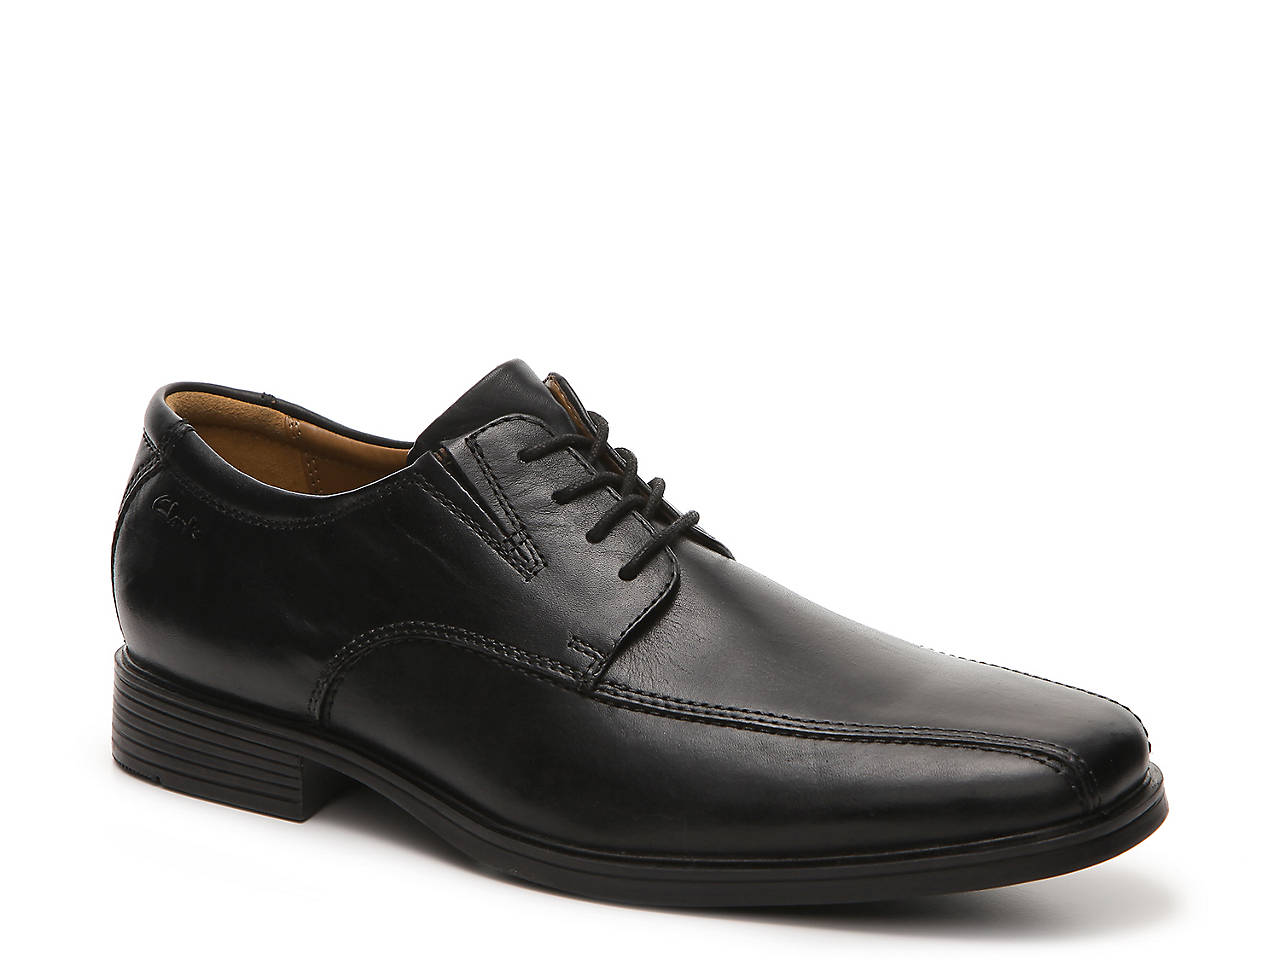 Clarks Tilden Walk Oxford Men's Shoes | DSW